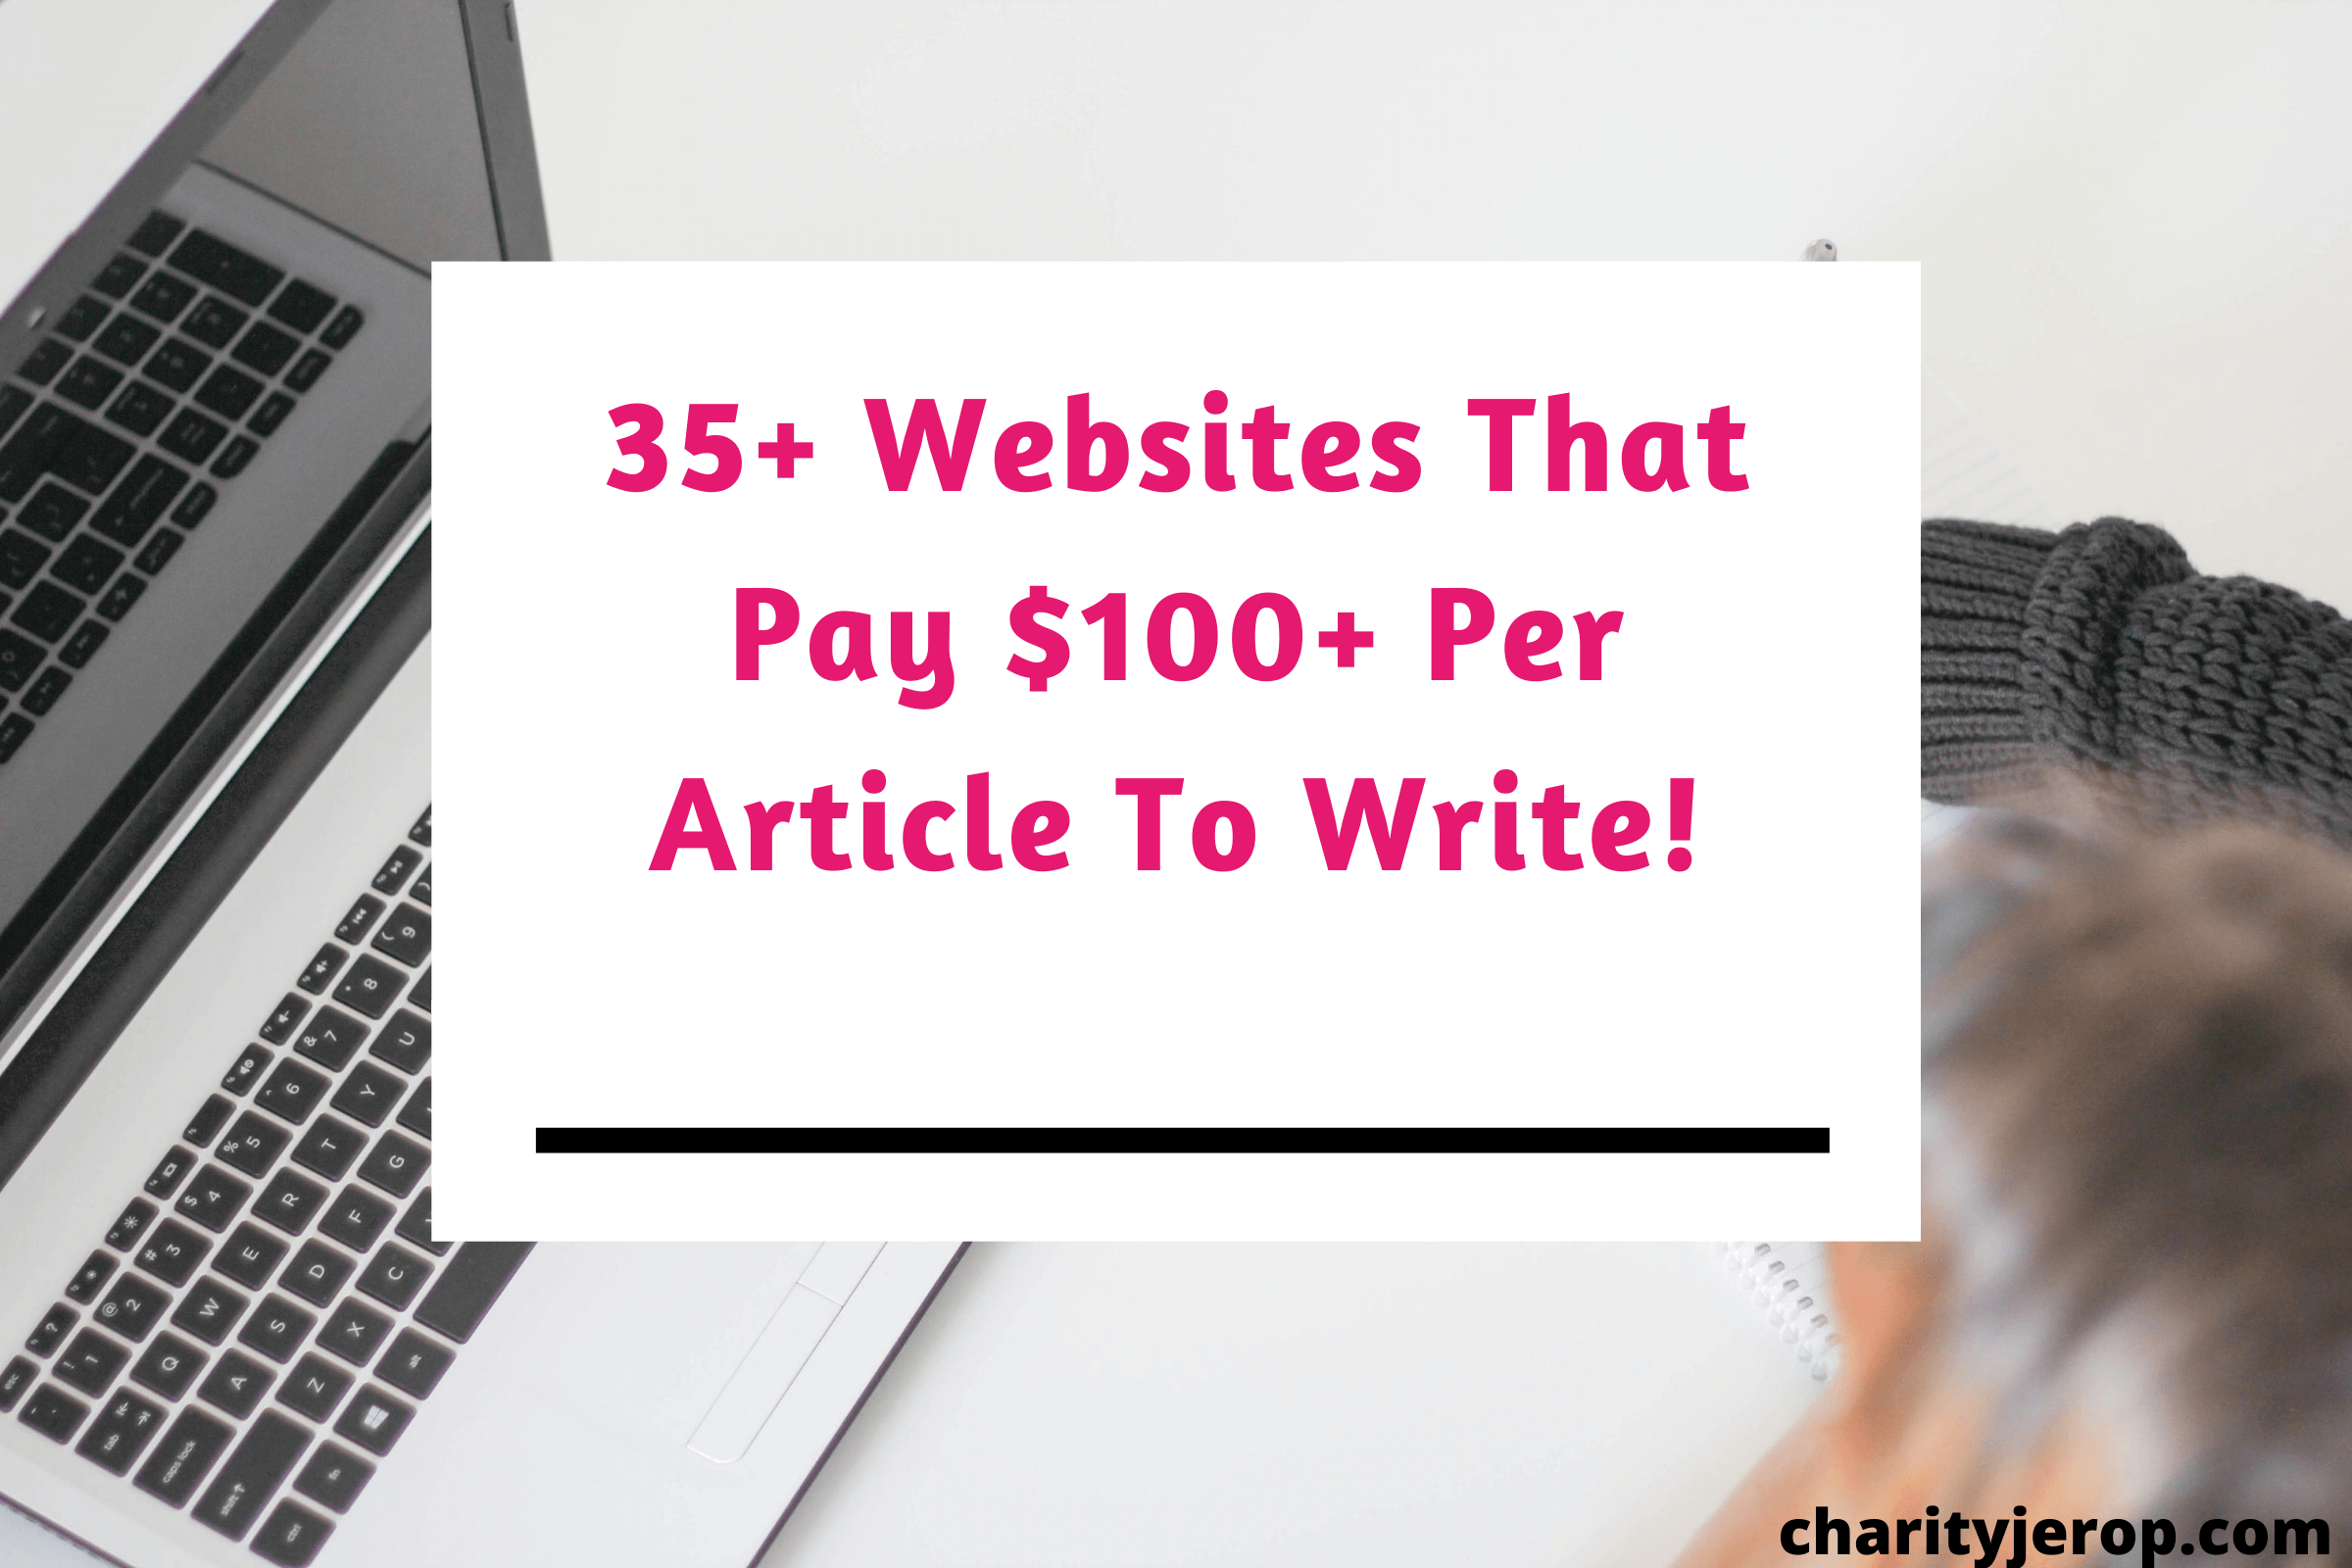 35+ Websites That Pay